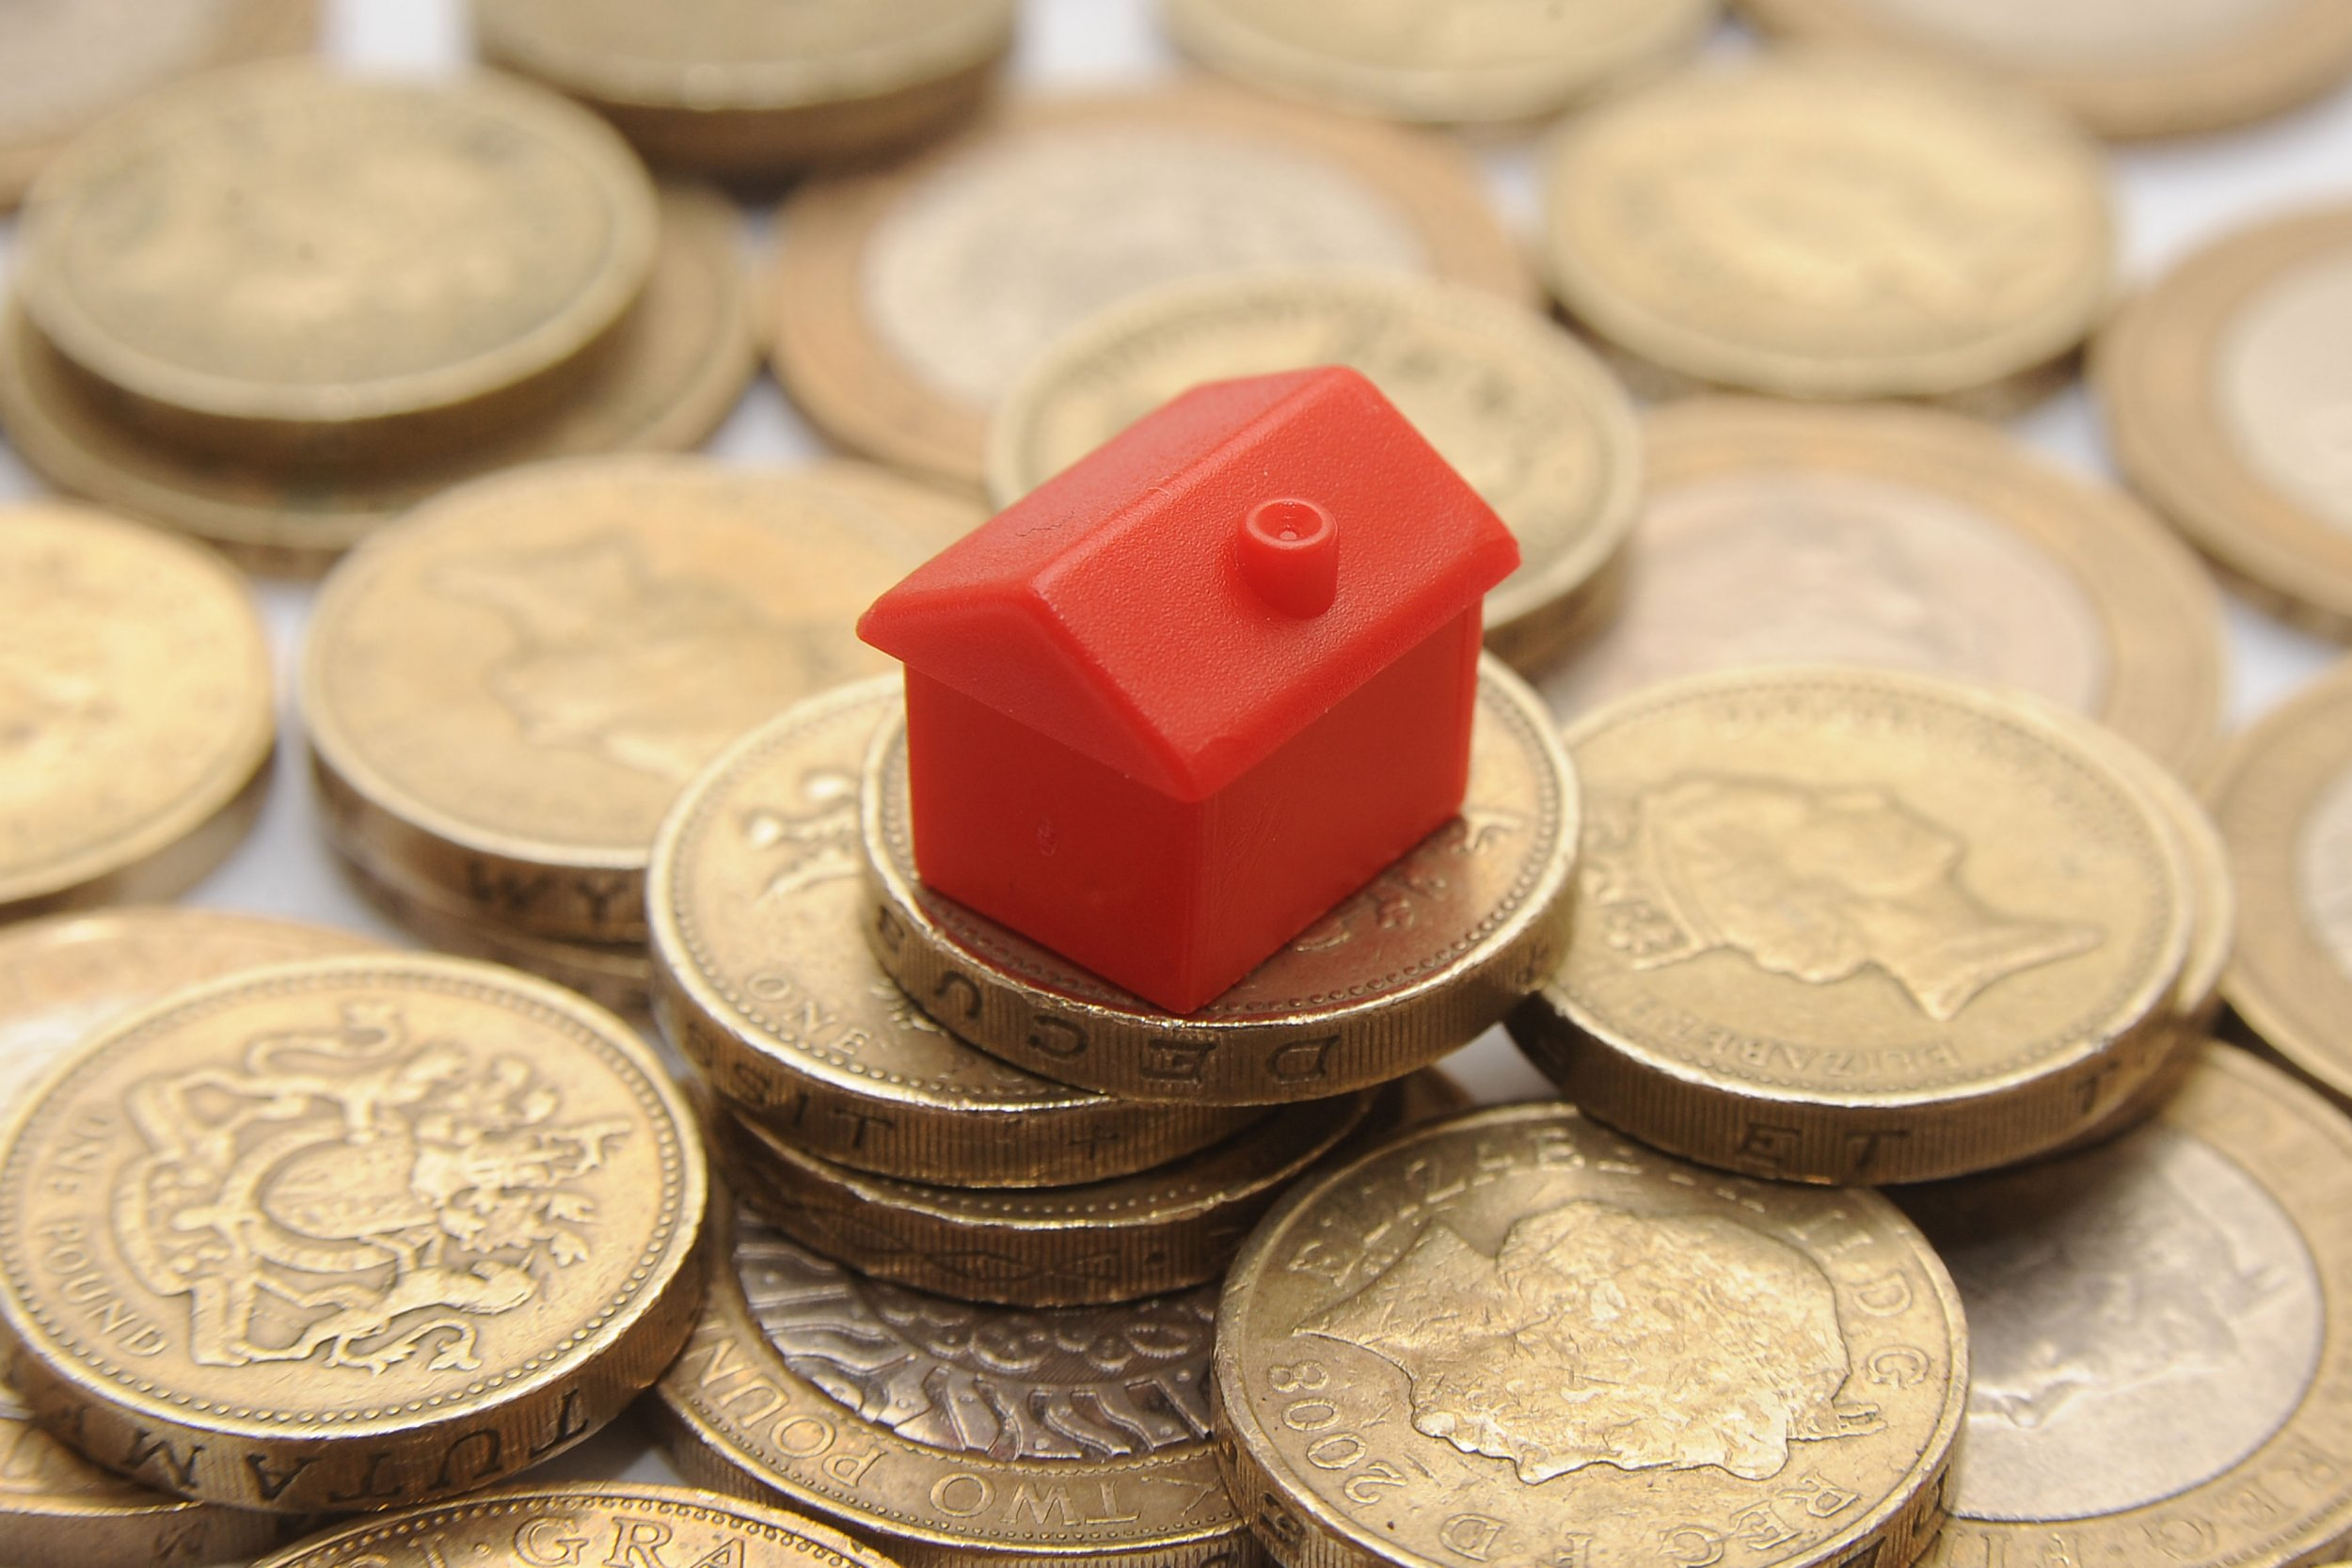 File photo dated 27/01/15 of a plastic model of a house on a pile of one pound coins. Millennials face paying £44,000 more on rent typically by the time they turn 30 than the baby boomer generation, analysis from a think-tank has found. PRESS ASSOCIATION Photo. Issue date: Saturday July 16, 2016. The Resolution Foundation said a combination of falling home ownership levels among the younger generation and rising costs in the private rented sector have fuelled the increase. See PA story MONEY Millennials. Photo credit should read: Joe Giddens/PA Wire